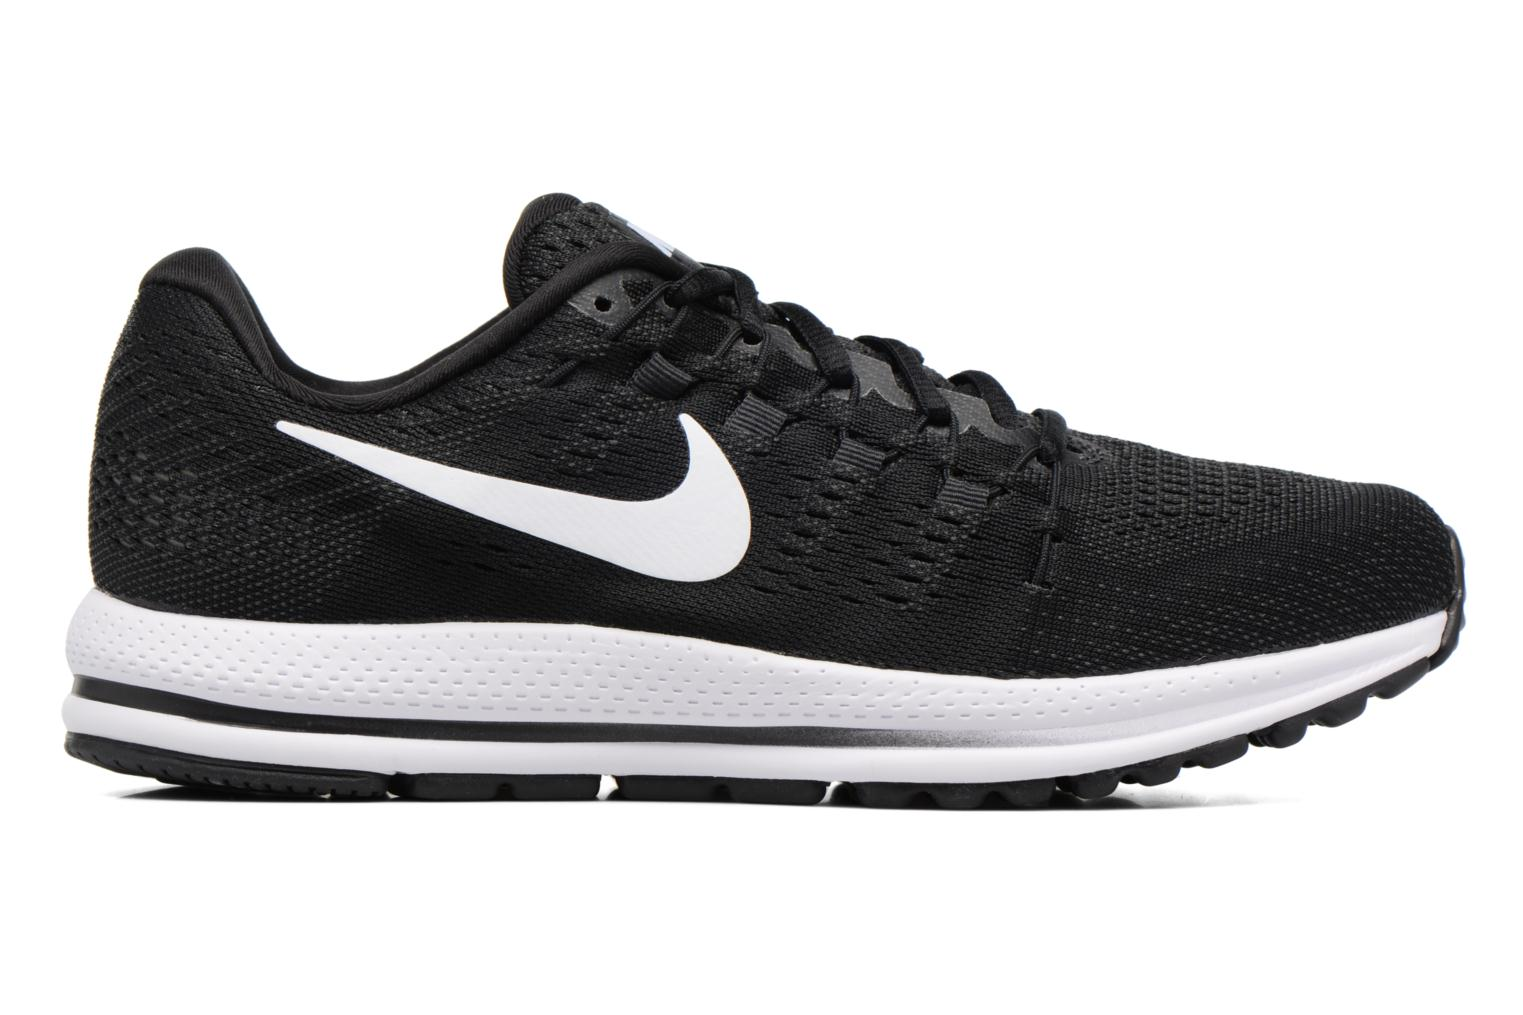 Nike Air Zoom Vomero 12 Black/white-anthracite